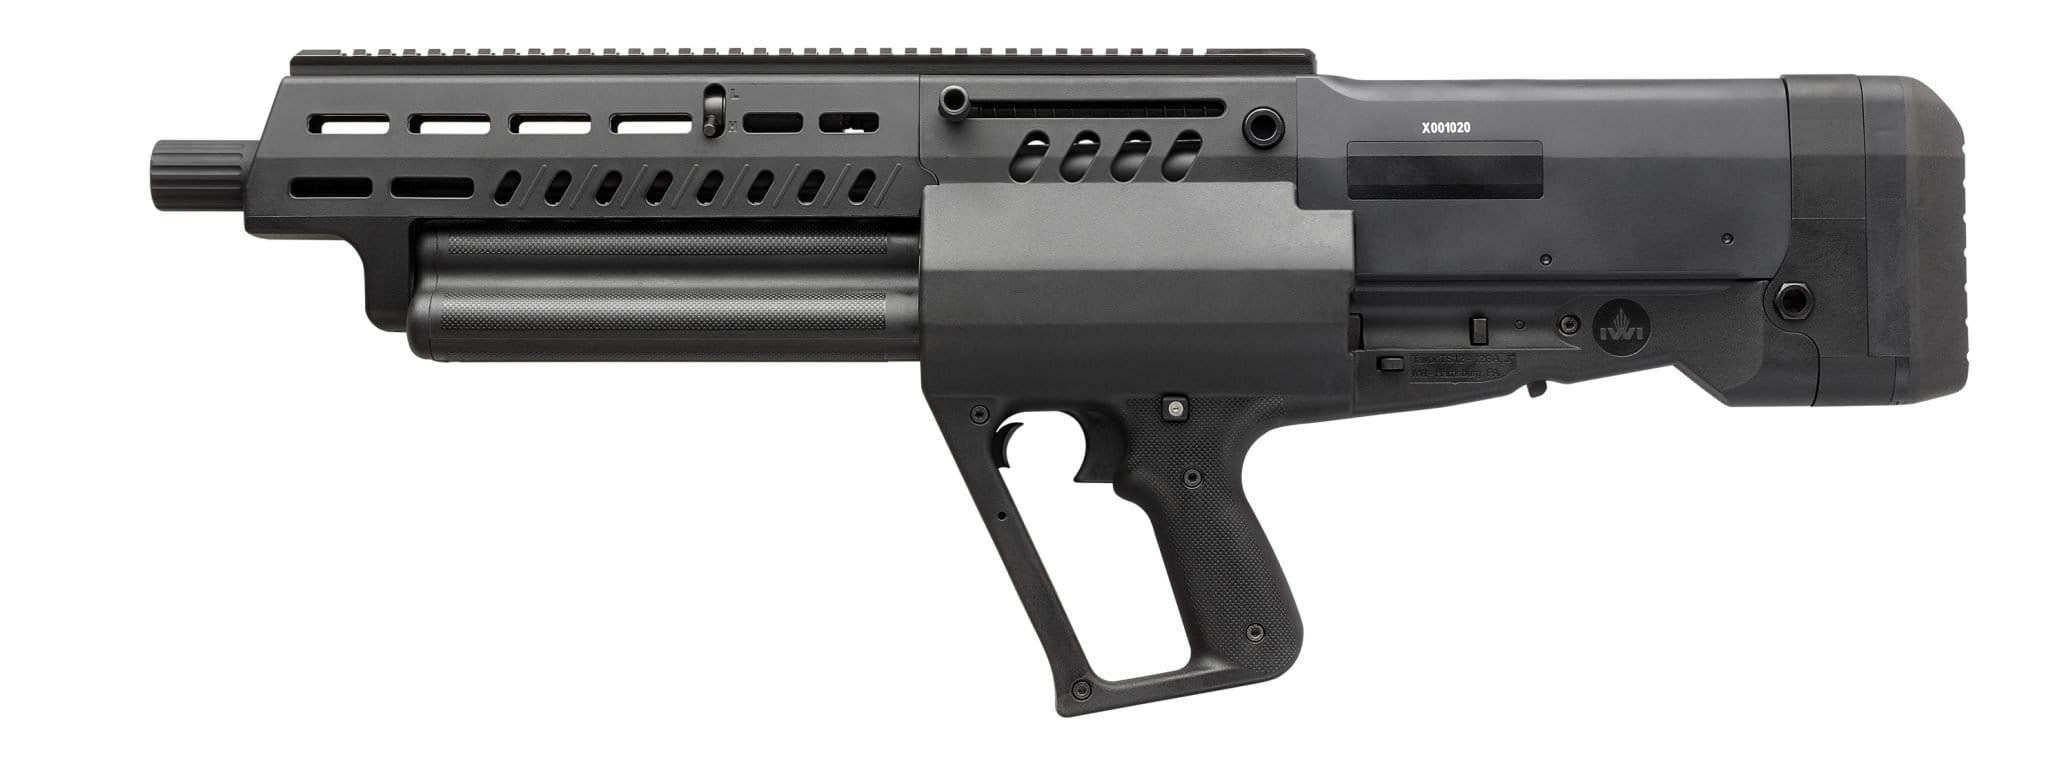 IWI's first shotgun is all bullpup, but can be switched to left or right-hand operation and carries 15 shells in its trio of magazine tubes. (Photos: IWI US)